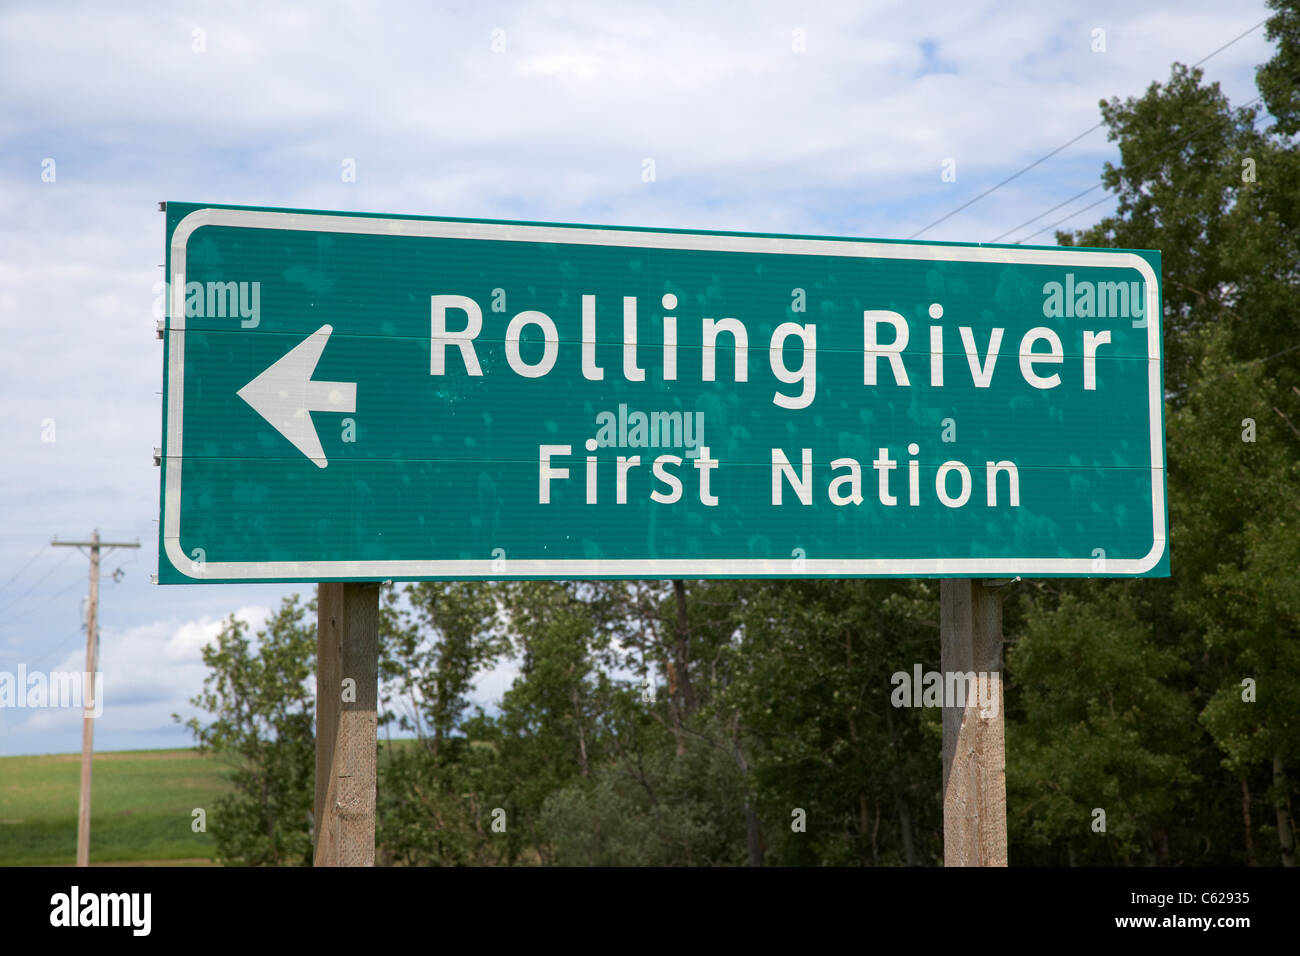 sign for rolling river first nation reservation highway sign in manitoba canada - Stock Image